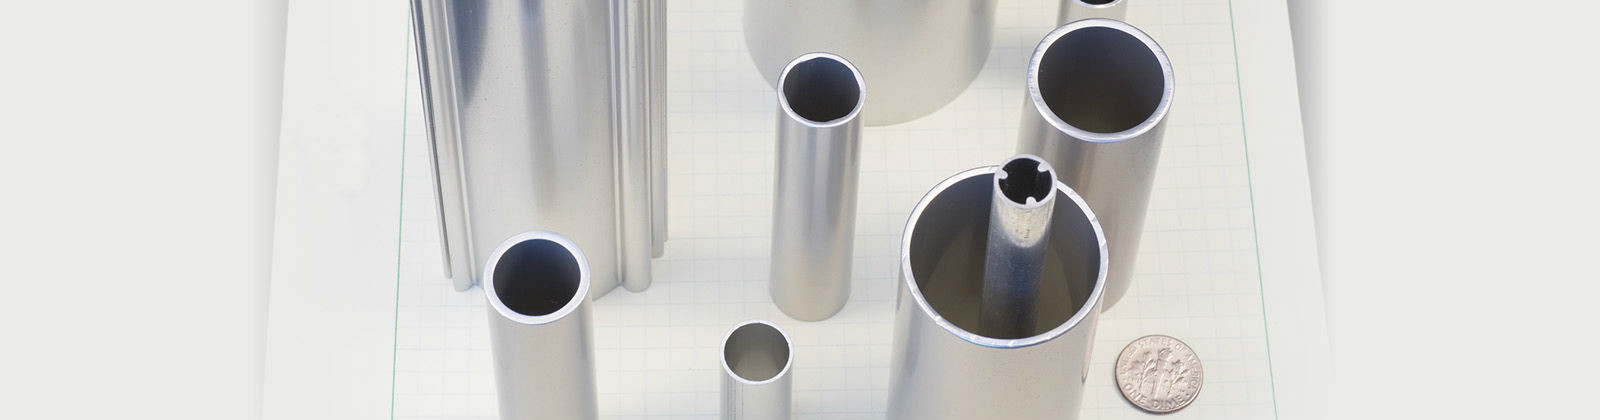 Profile Precision Extrusions - extruded aluminum tubing